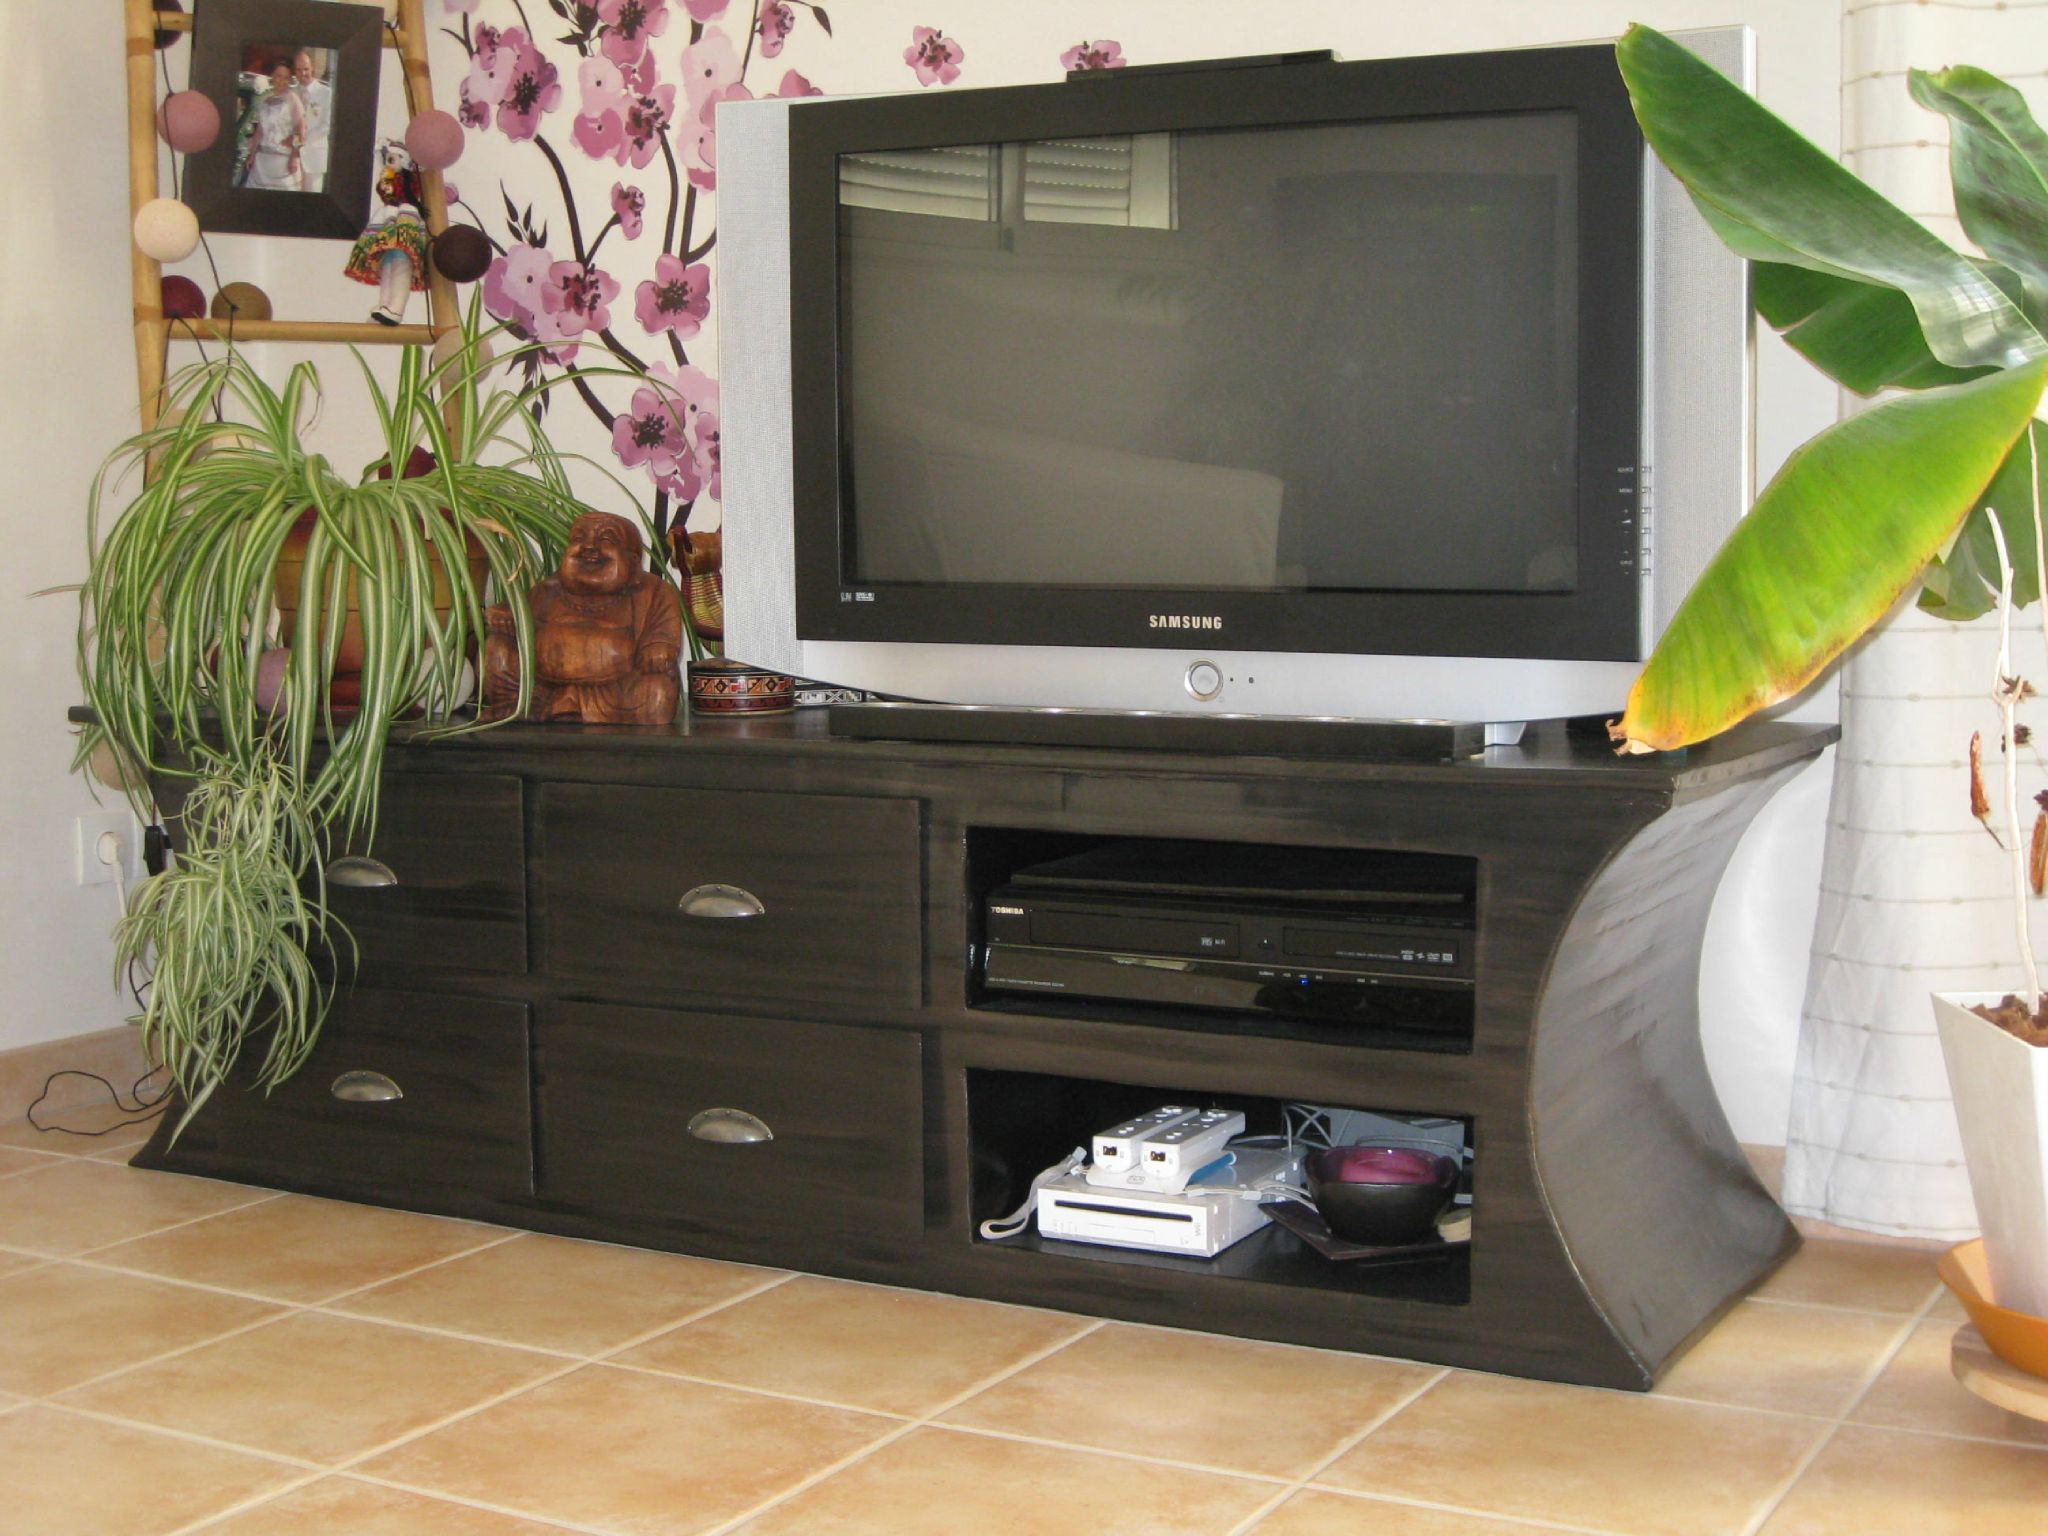 meuble tv photo de meubles en carton style contemporain la f e kraft. Black Bedroom Furniture Sets. Home Design Ideas